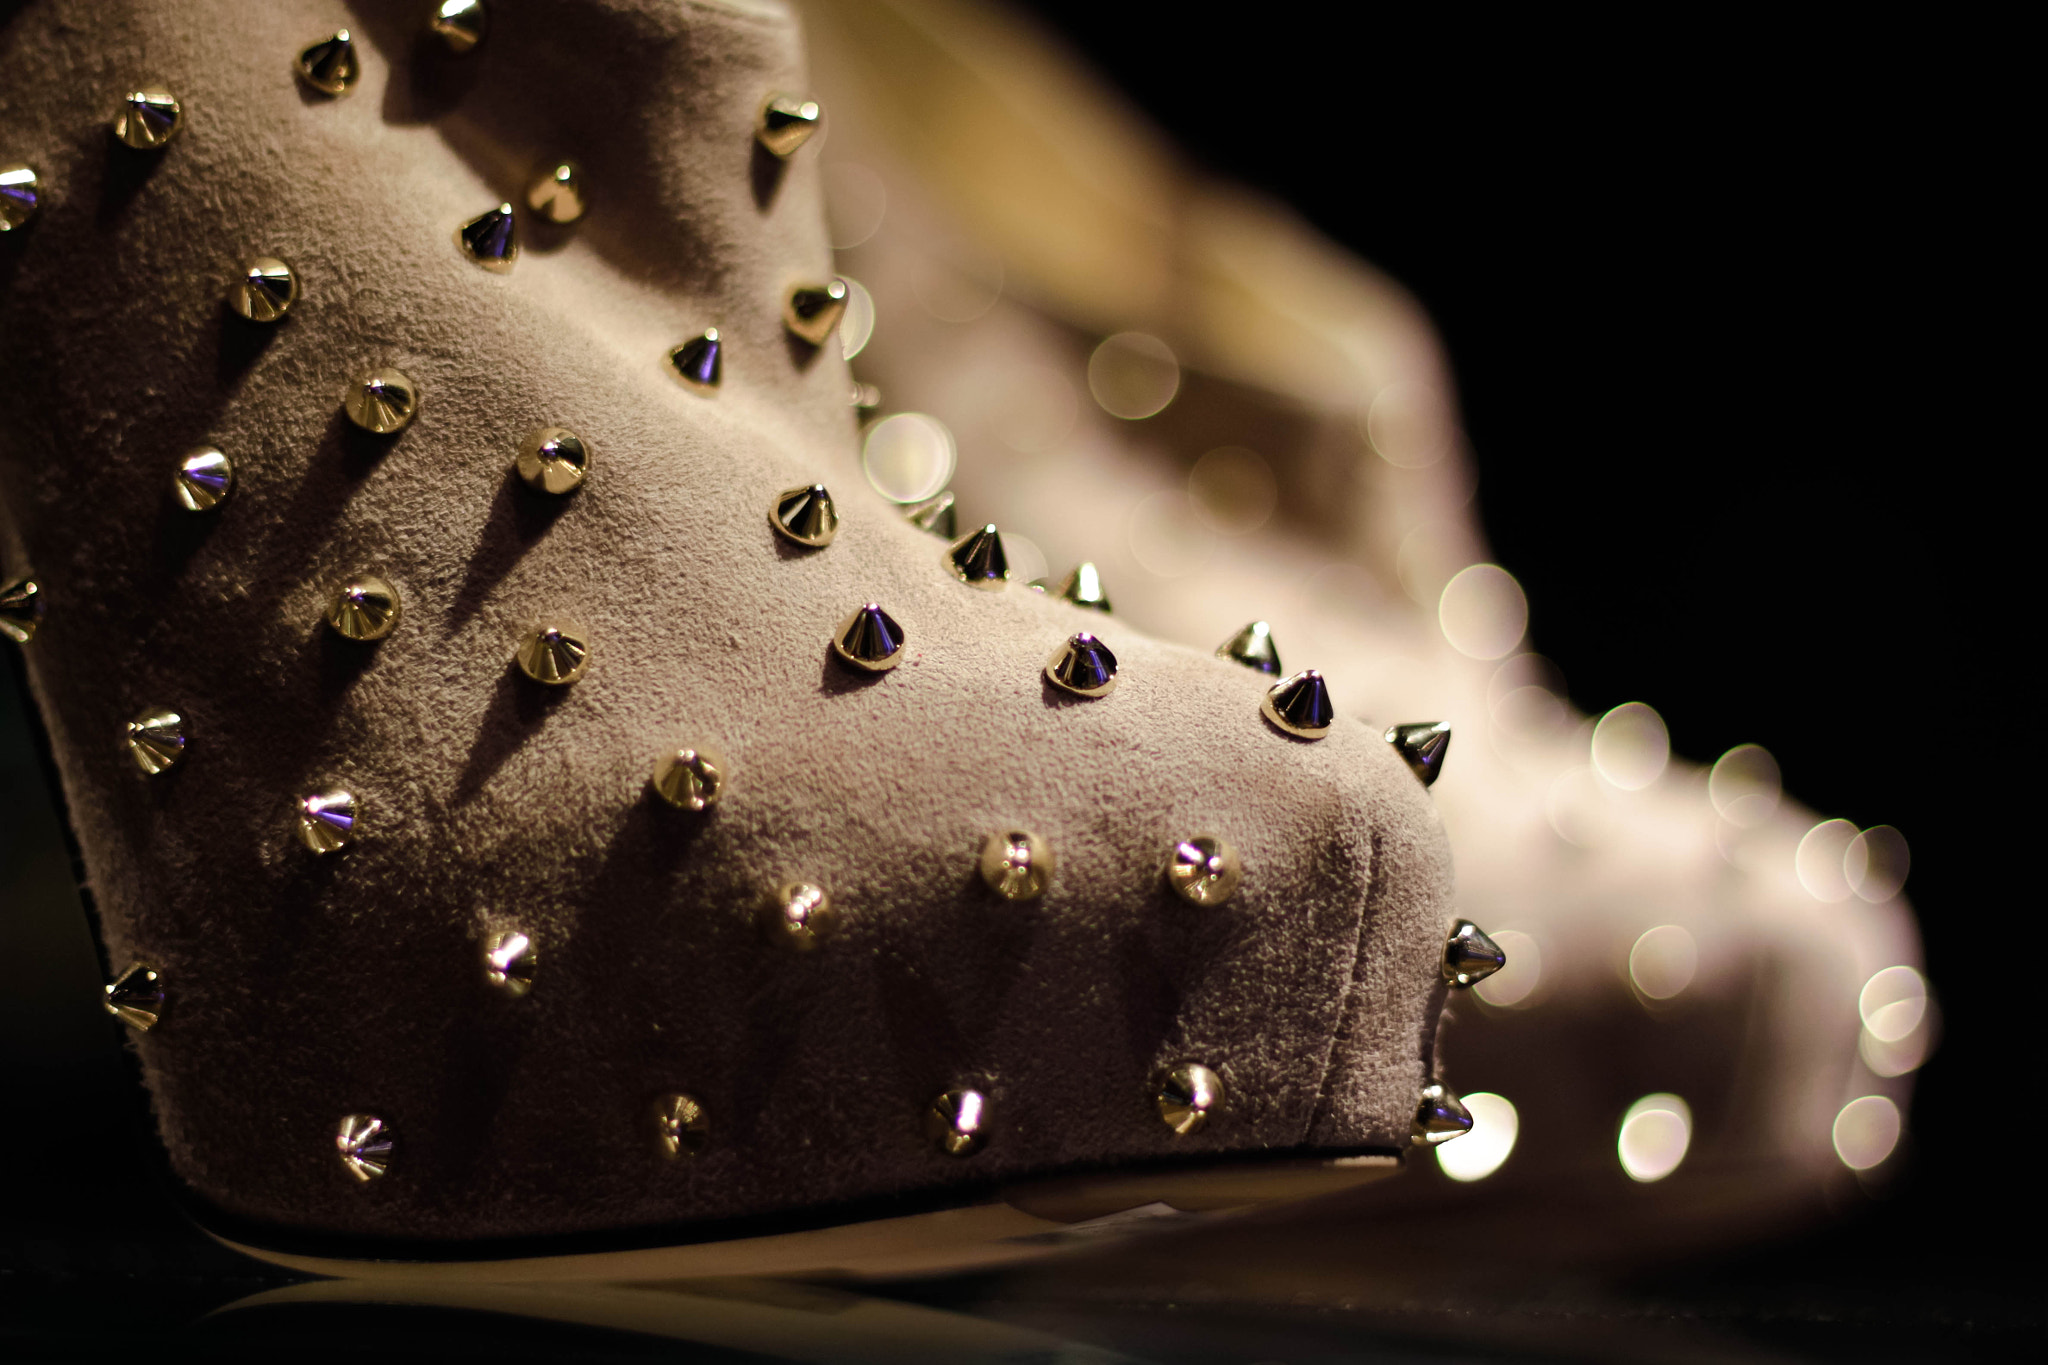 Photograph Killer shoes by Boetz on 500px